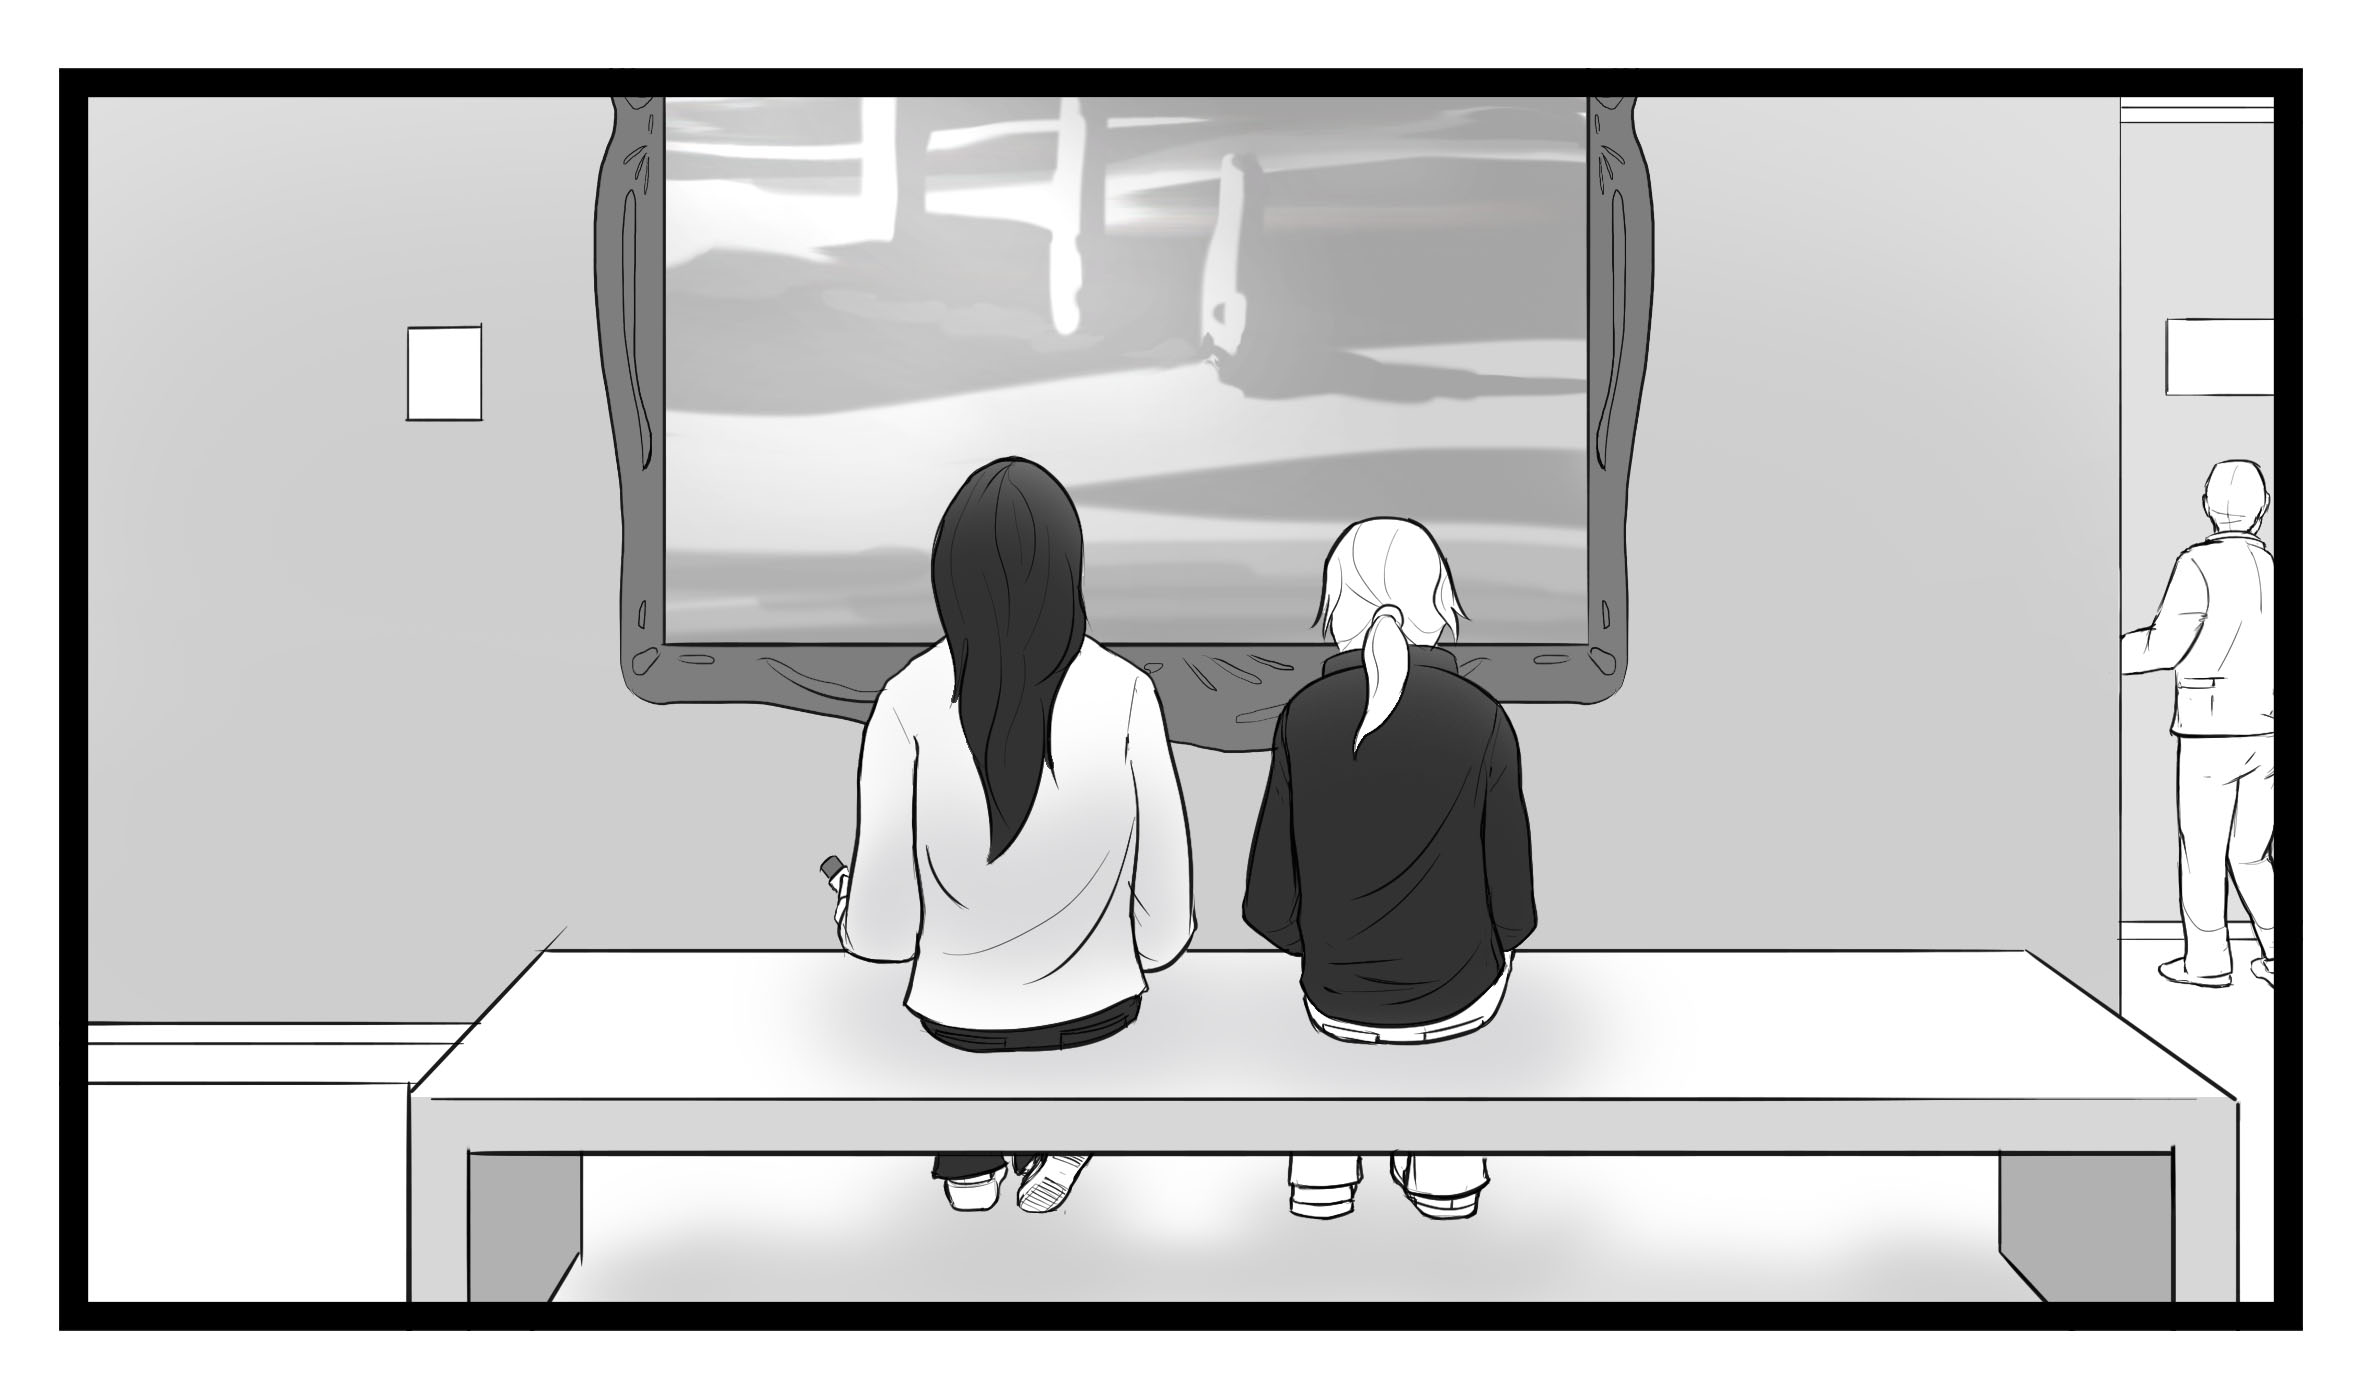 Storyboards SPRINTER - CHAPTER 4 MB3 S2.jpg